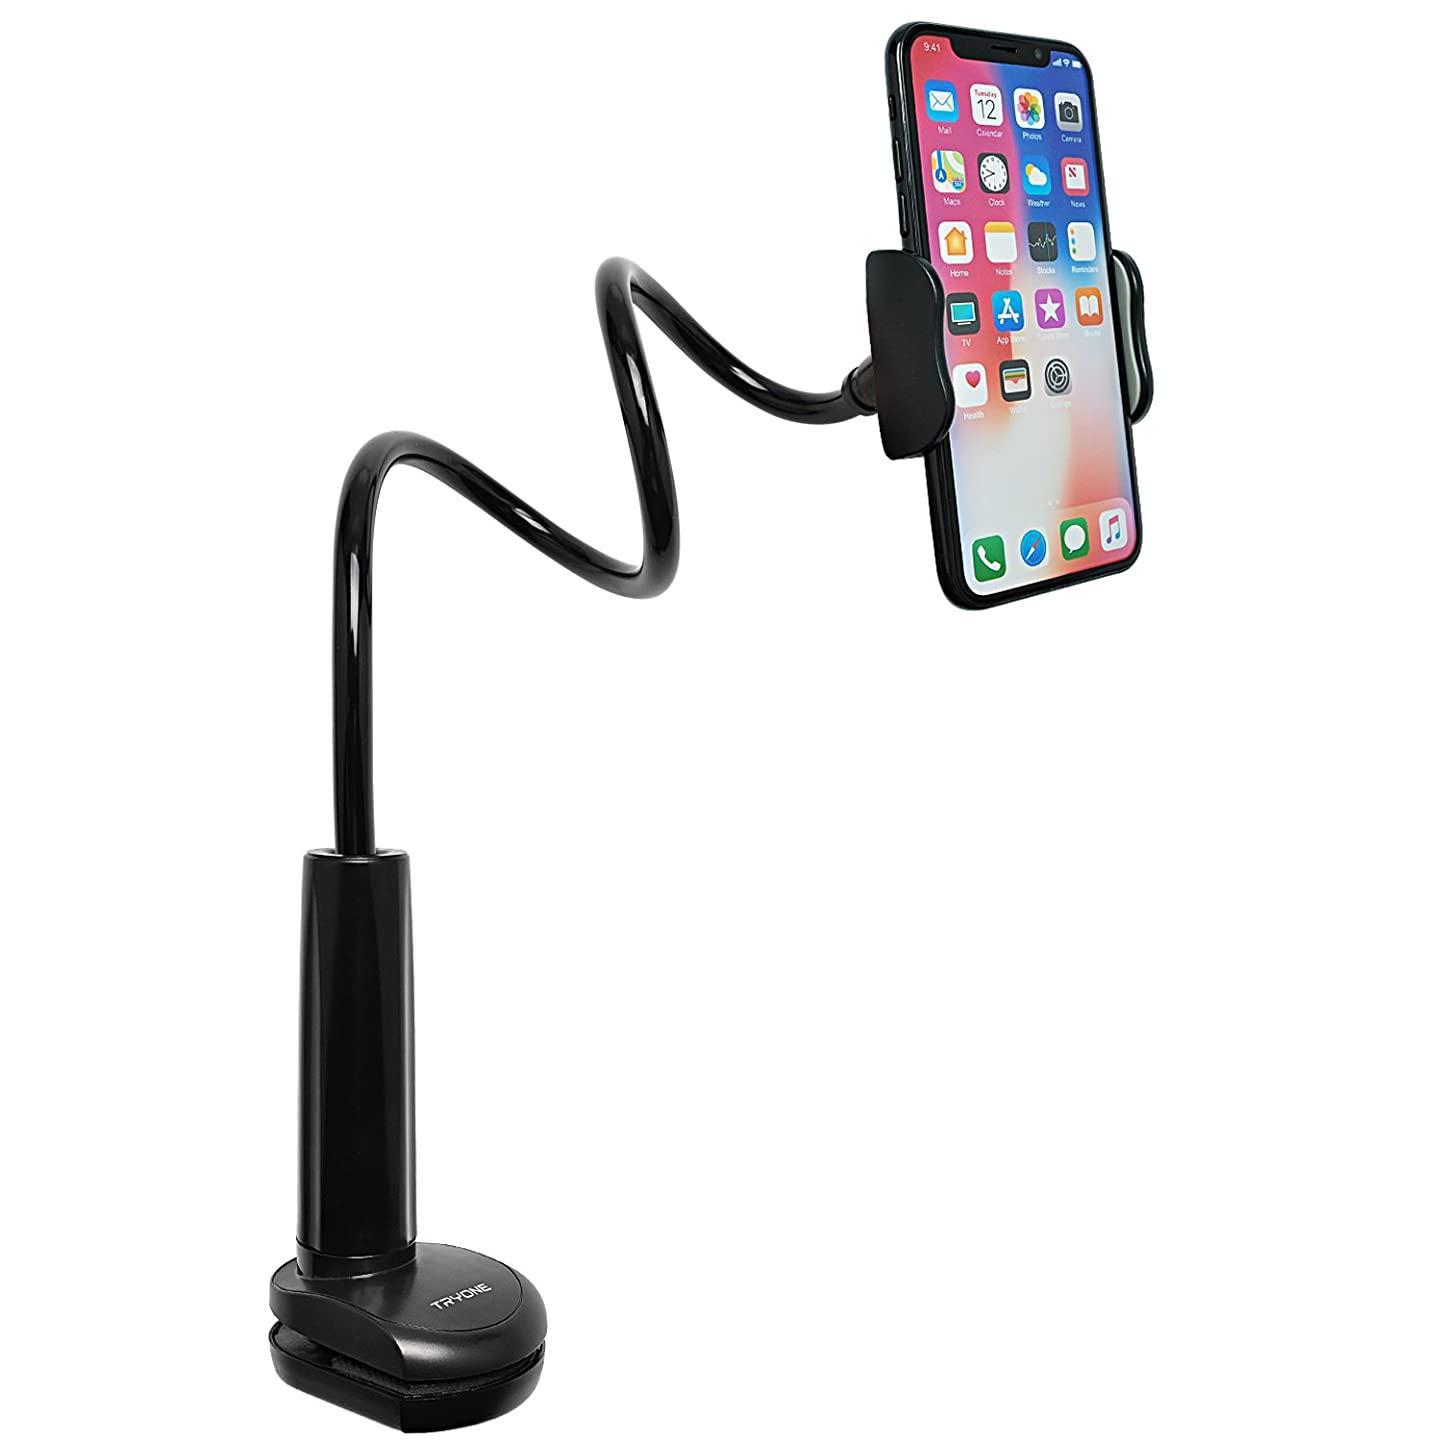 Tryone Gooseneck Phone Holder, Flexible Long Arm Mount Stand Compatible with Smartphones, Max Width 3in, Overall Length 27.5in(Black) huctgoyixyc2